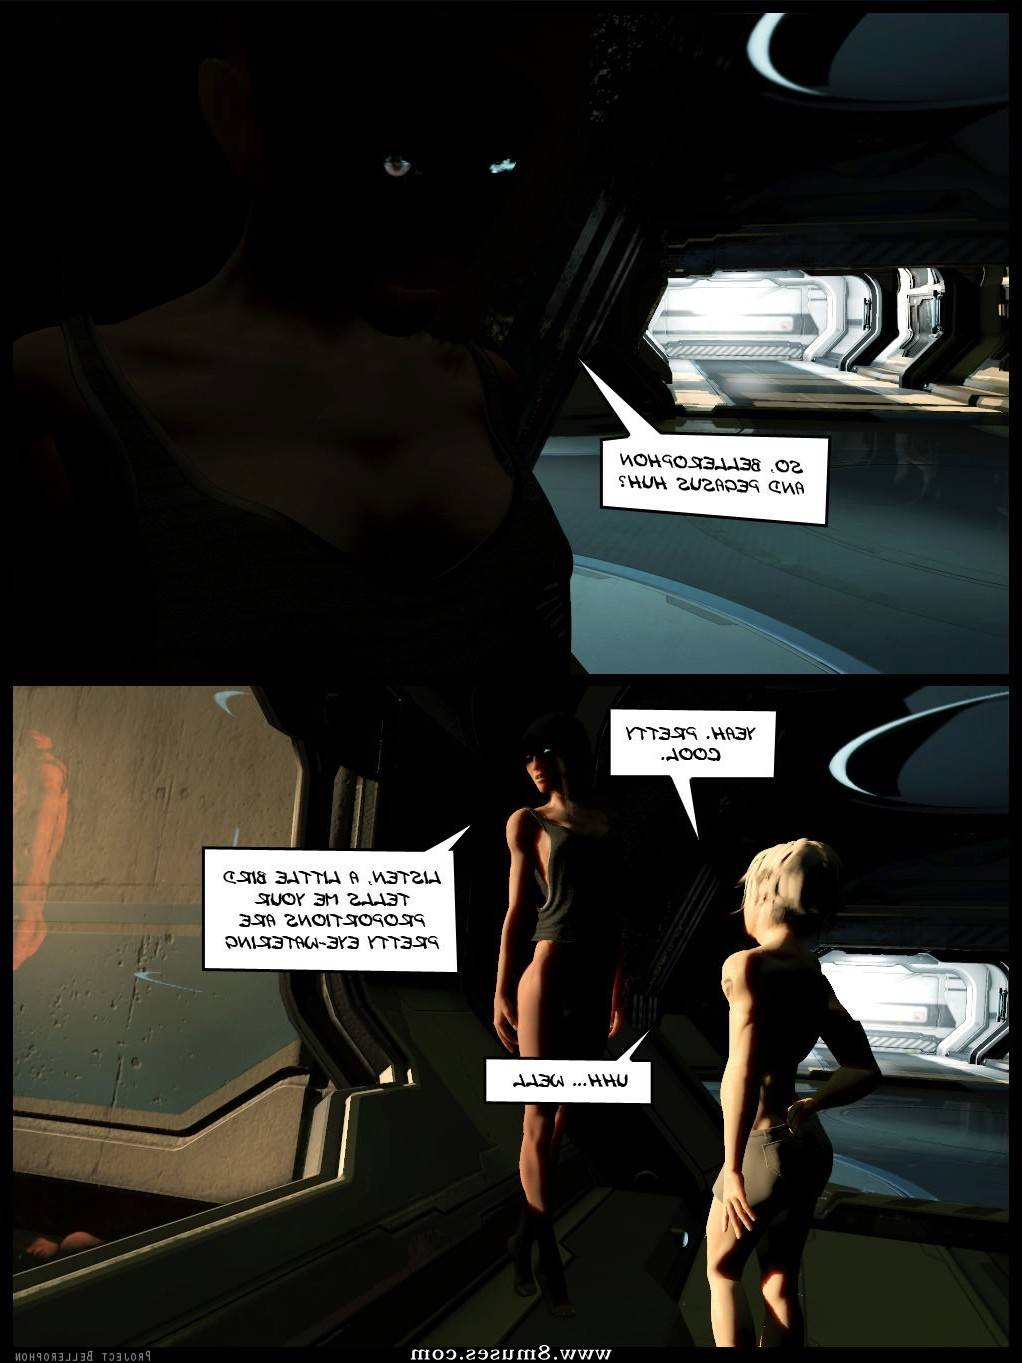 project-bellerophon-comics/18-Shadows-and-Dust 18-Shadows_and_Dust__8muses_-_Sex_and_Porn_Comics_55.jpg